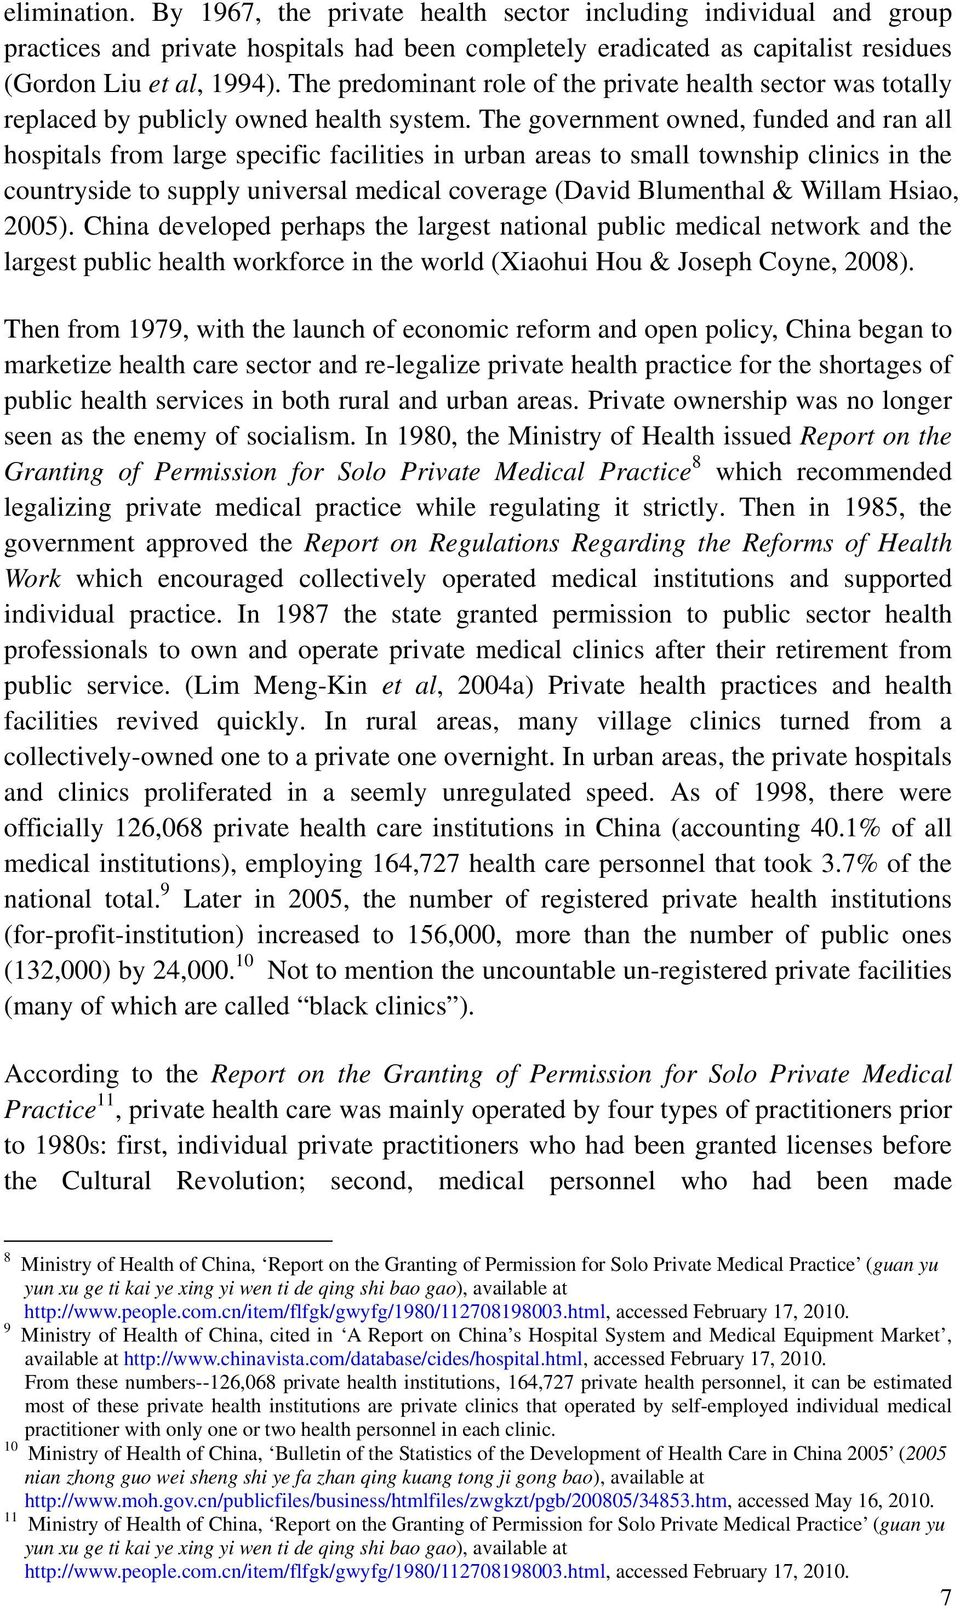 The government owned, funded and ran all hospitals from large specific facilities in urban areas to small township clinics in the countryside to supply universal medical coverage (David Blumenthal &